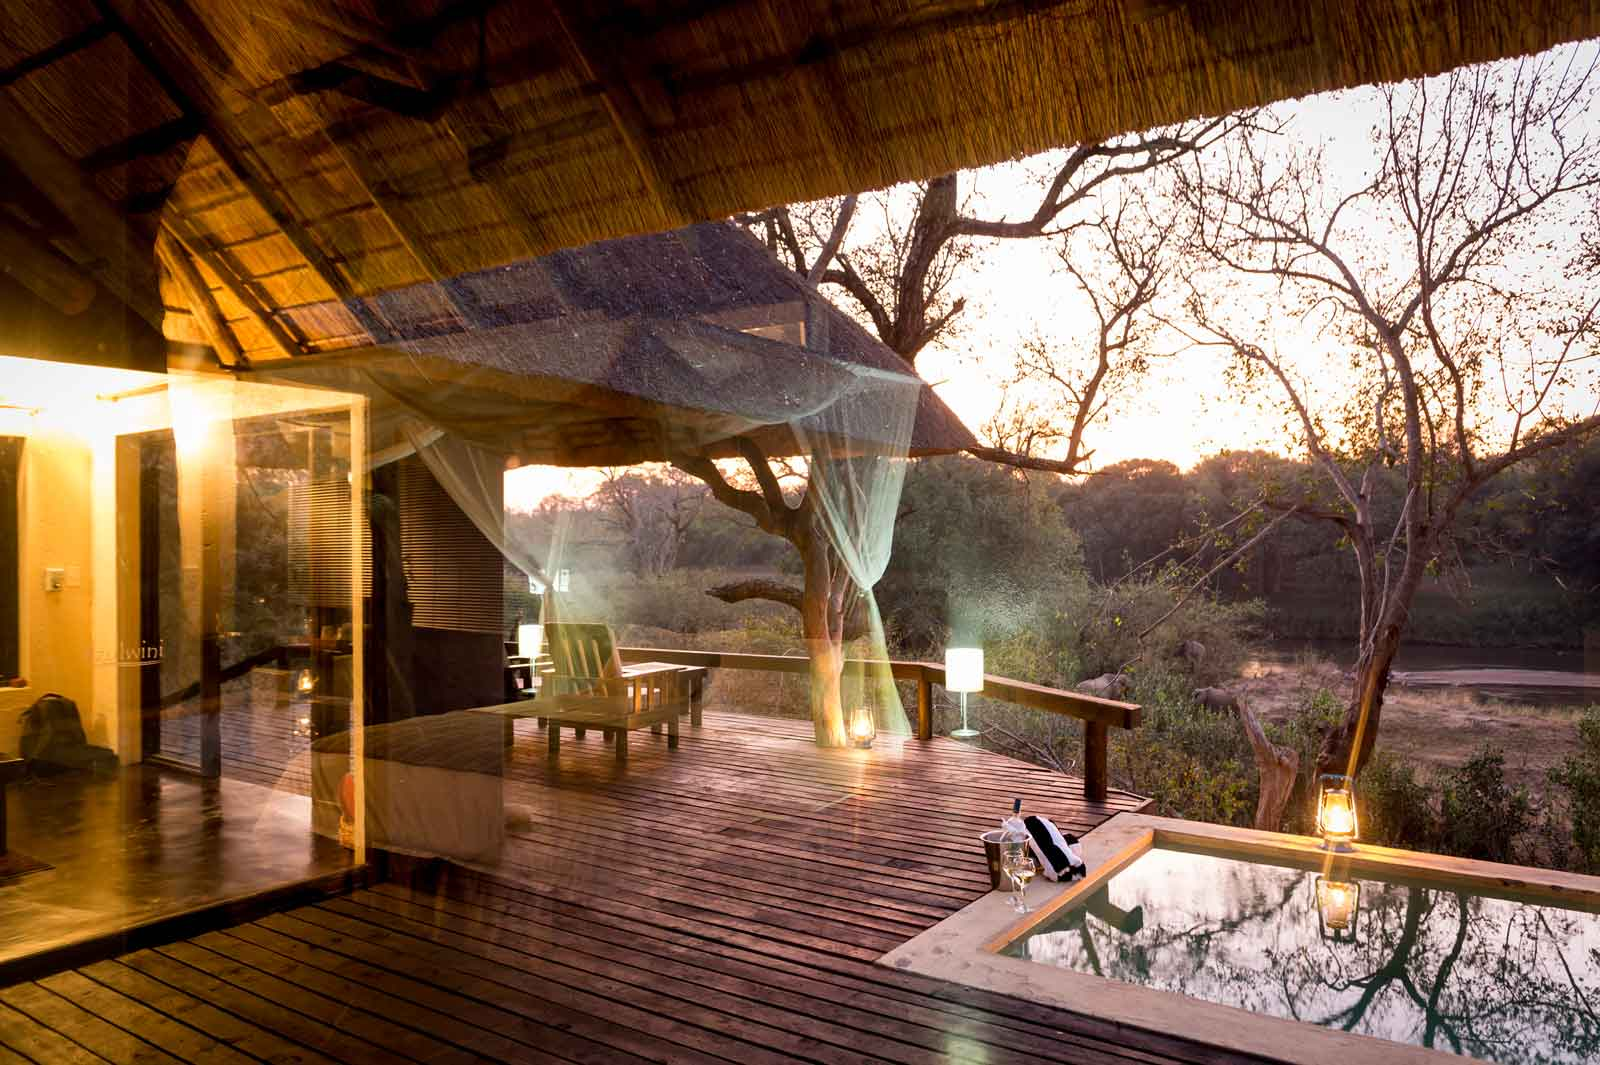 Ezulwini River Lodge suites overlook the Olifants